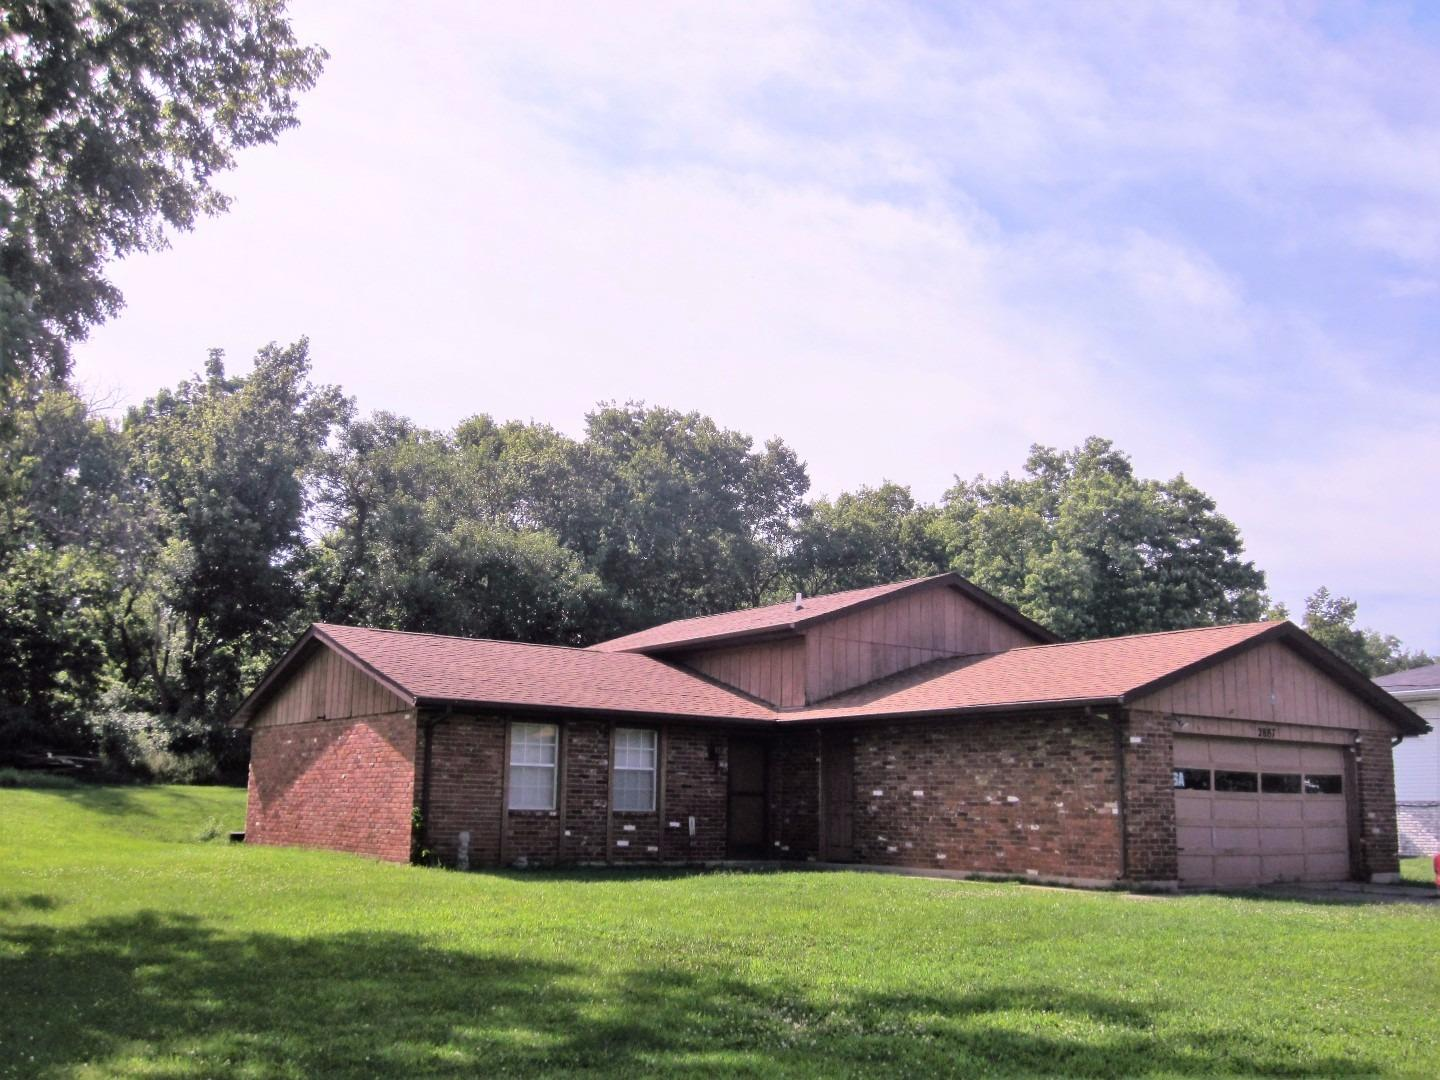 singles in west elkton View all west elkton, oh hud listings in your area all hud homes that are currently on the market can be found here on hudcom find hud properties below market value.